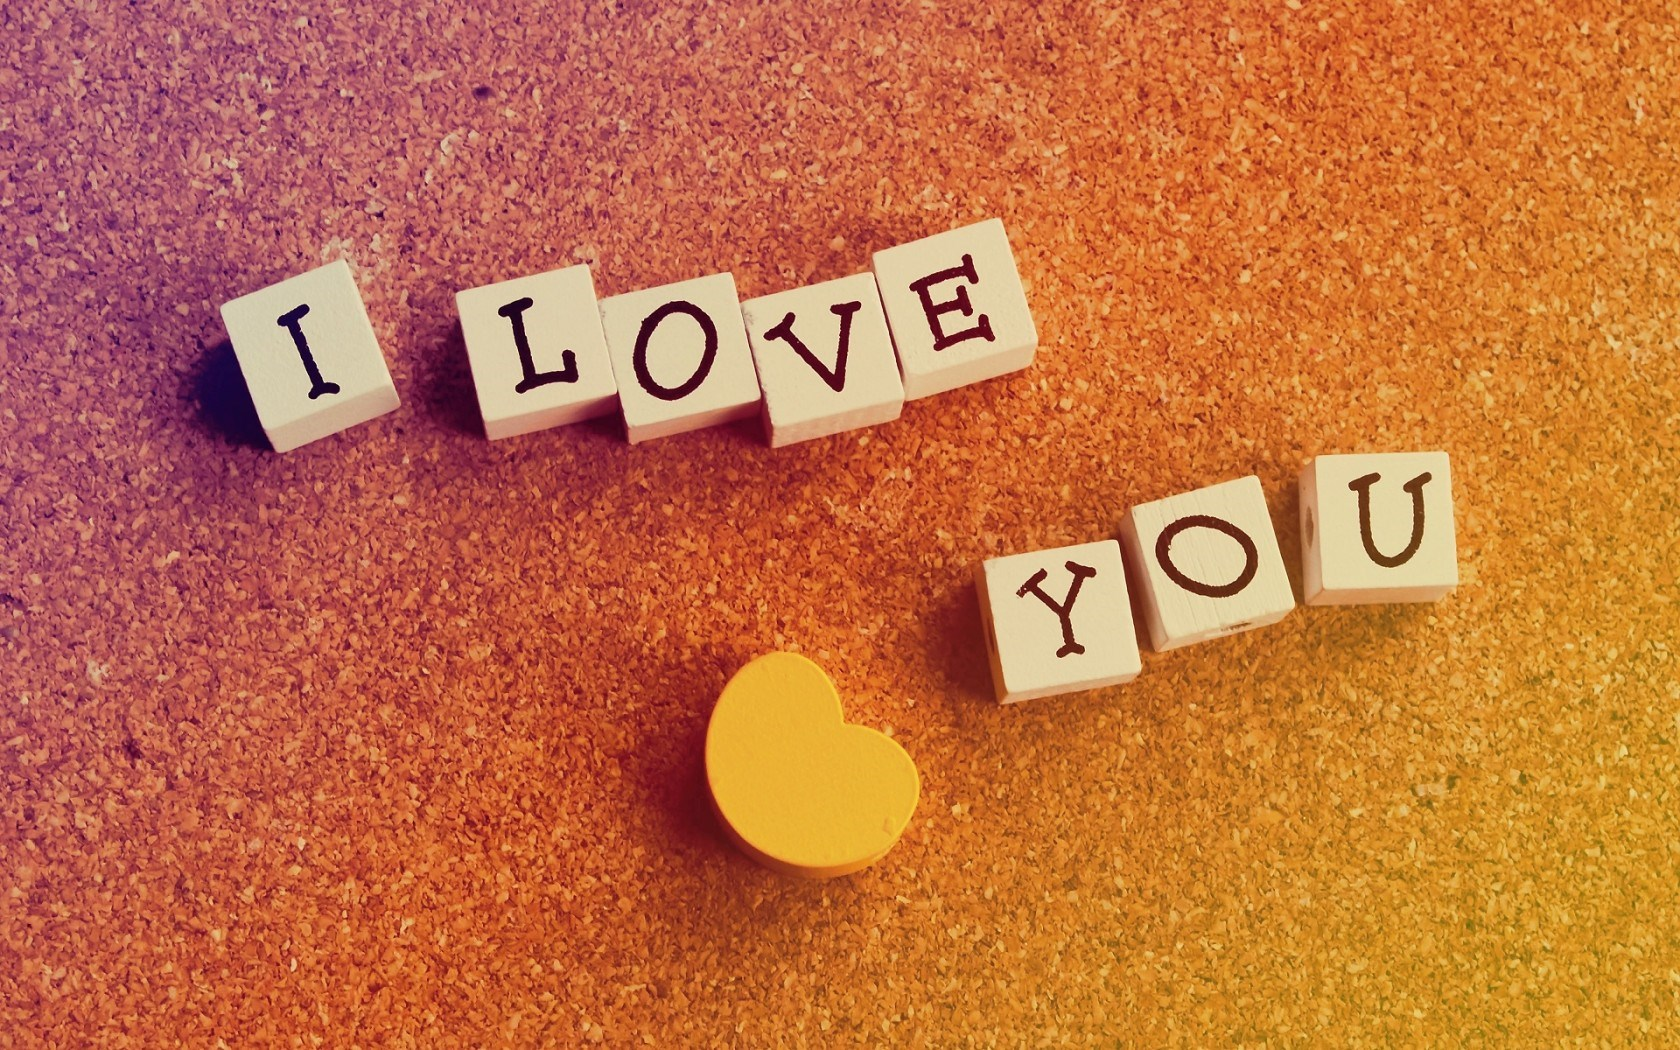 Wallpaper I Love You Photo : I Love You Wallpapers HD A17 - HD Desktop Wallpapers 4k HD